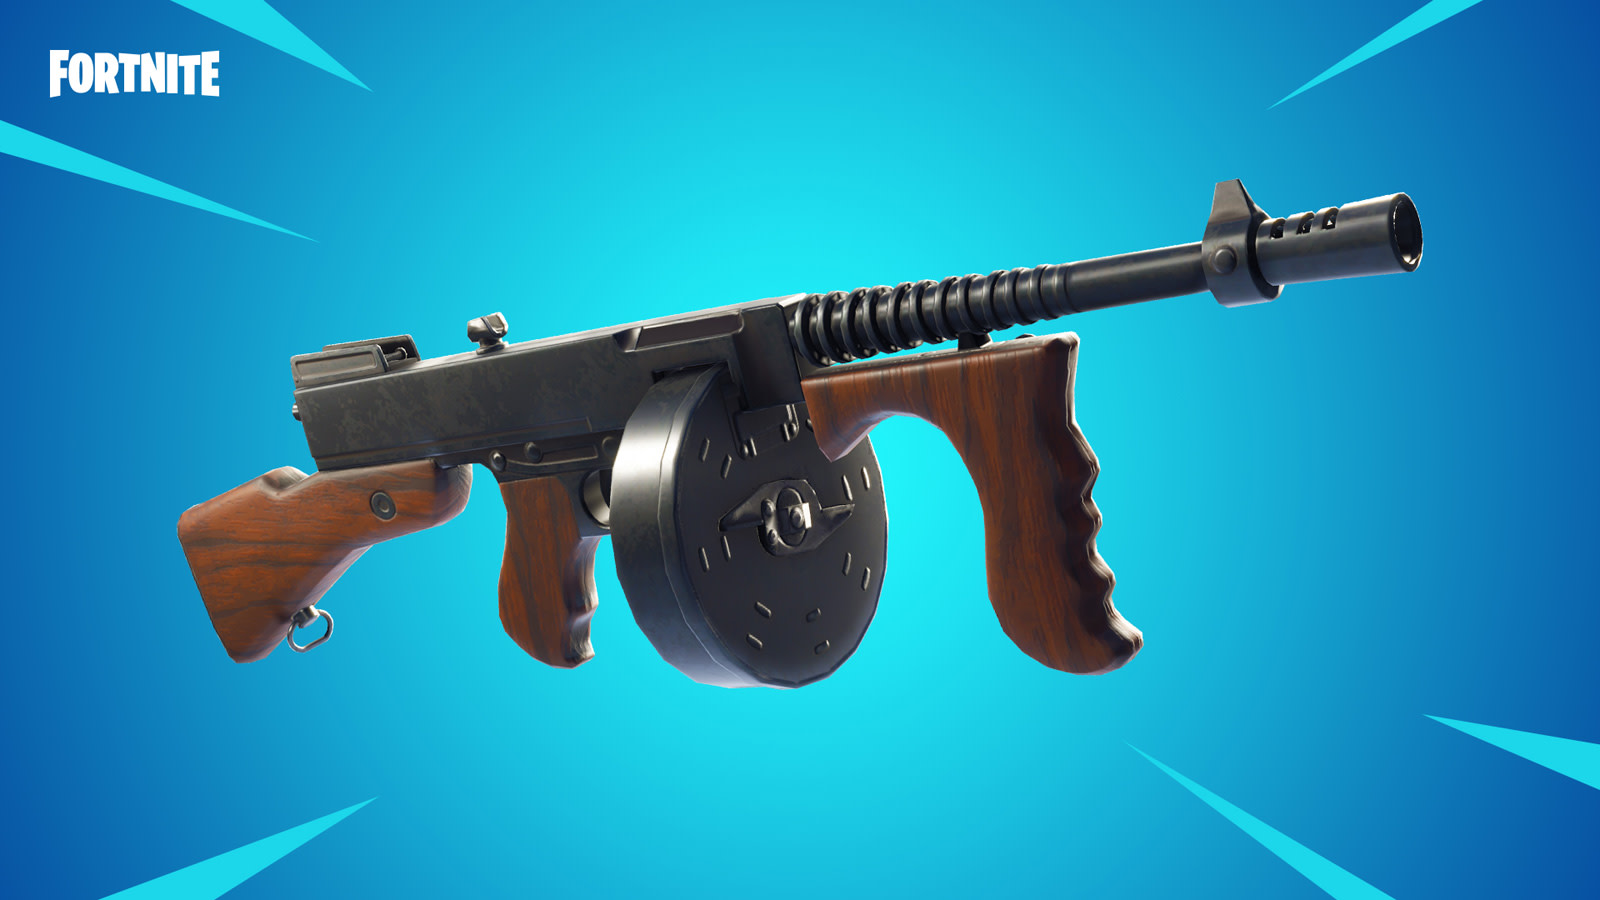 One Of The Most Powerful Fortnite Guns Is No More